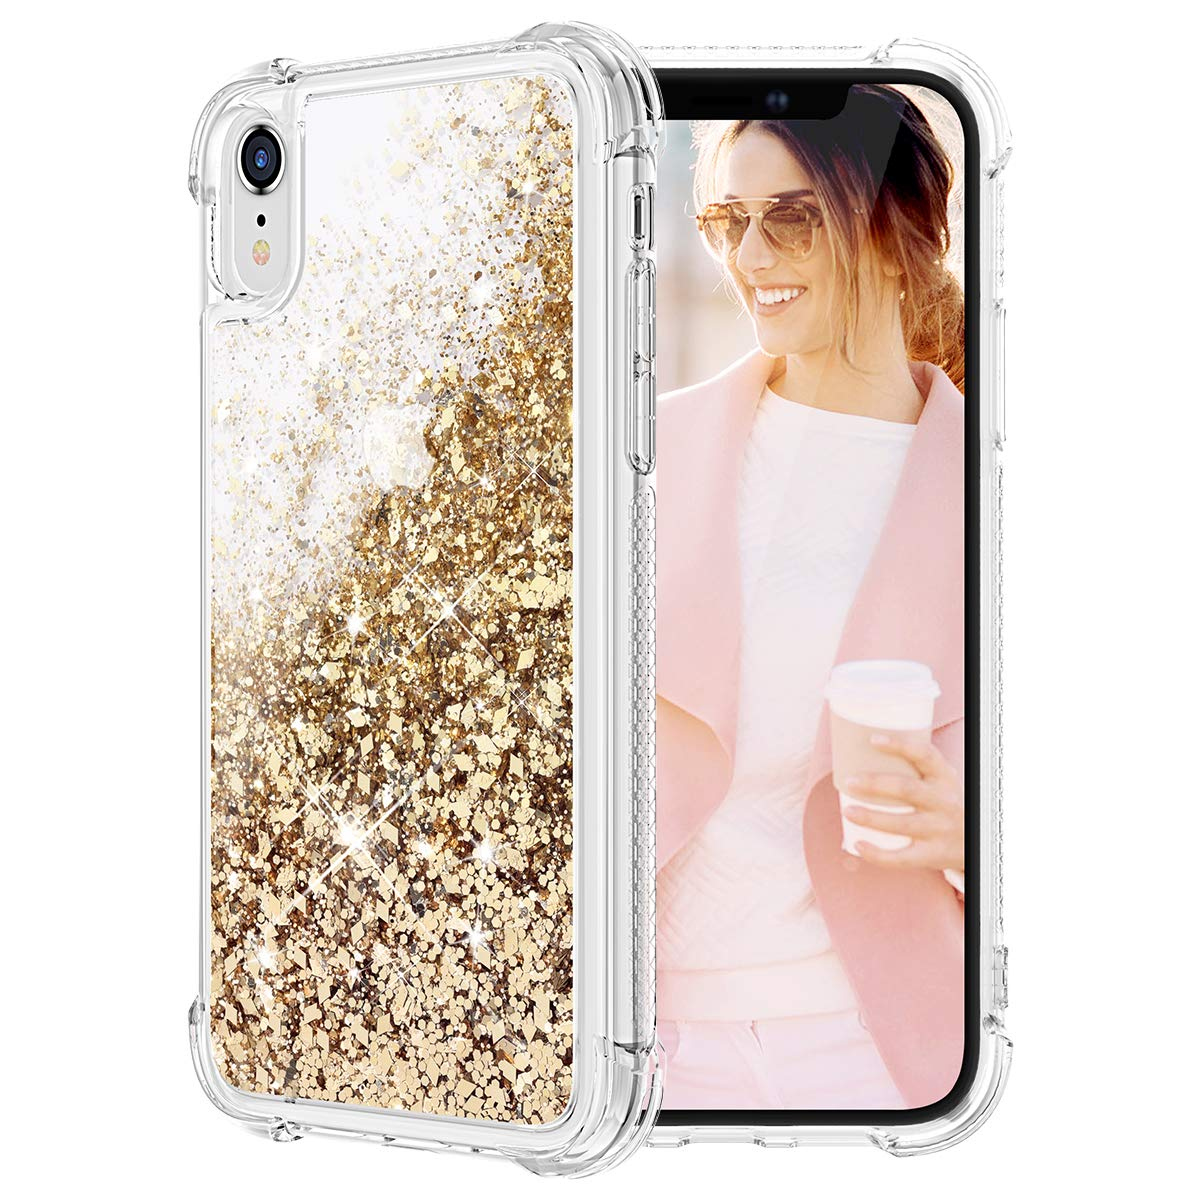 Caka Glitter Case for iPhone XR Bling Case Protective Shockproof Glitter Shinning Luxury Fashion Flowing Liquid Floating Sparkle Soft TPU Clear Case for iPhone XR (6.1 inch) (Gold)